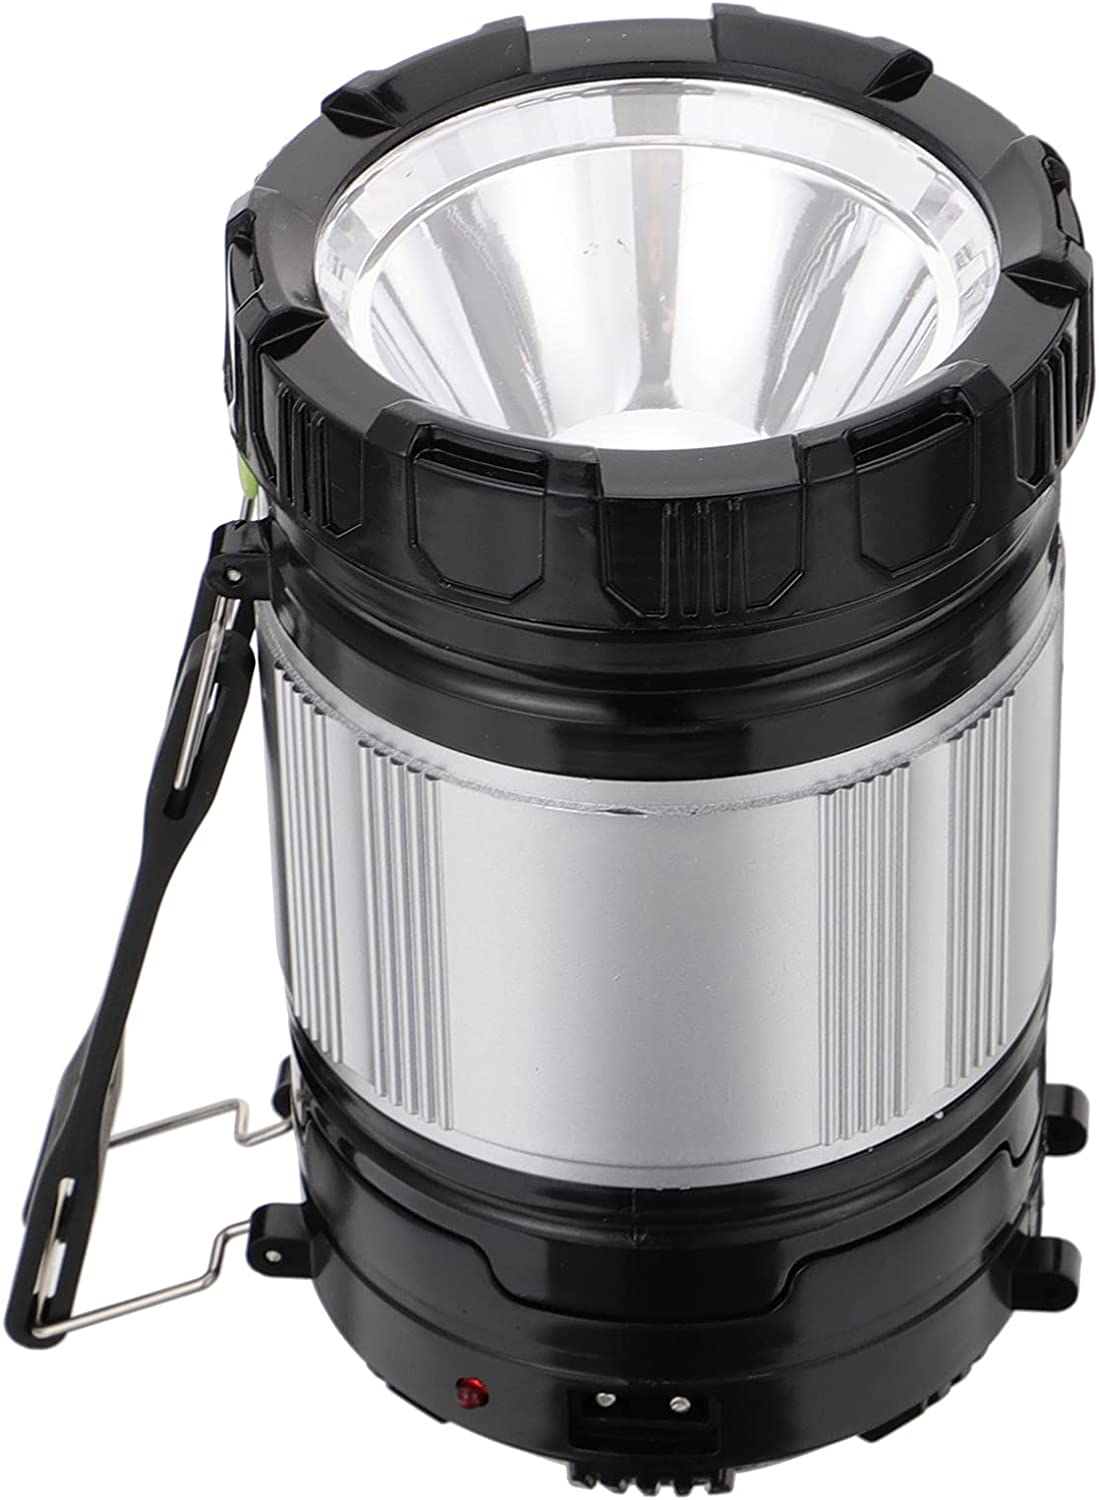 BESPORTBLE Solar Camping Light LED Lantern Tent Ranking TOP10 2021 spring and summer new Lamp Outdoor Eme